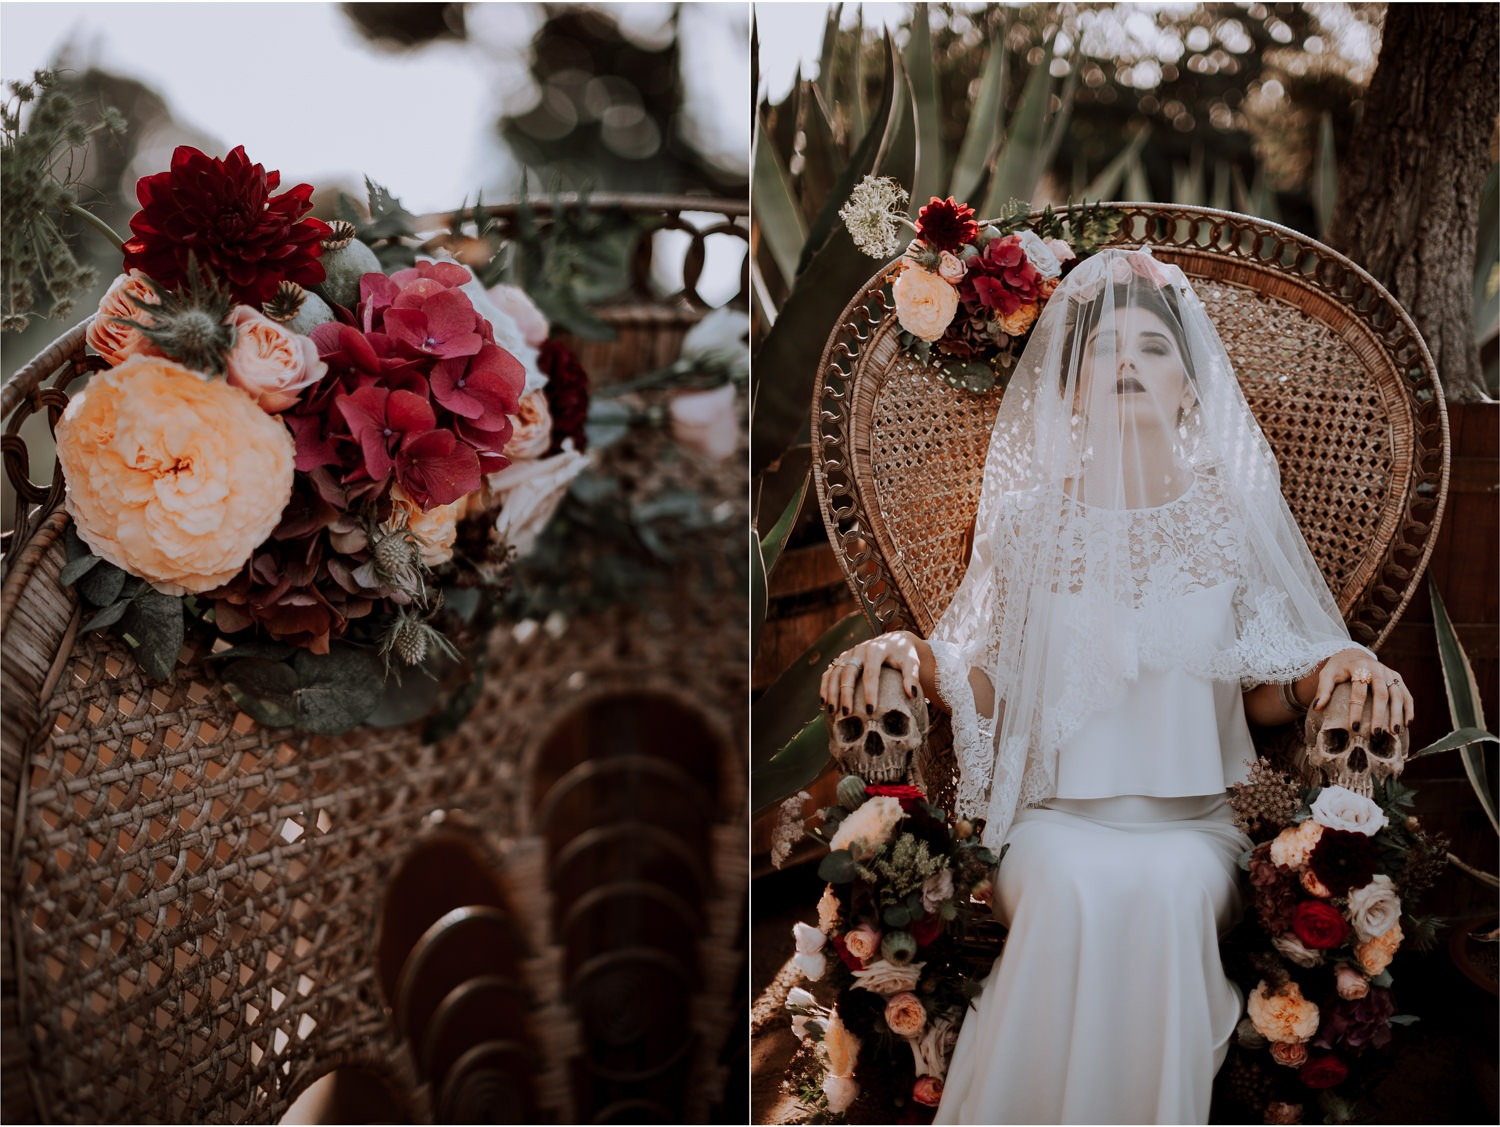 Photographe mariage Lyon - Frida Kahlo - Mariage original - Mariage mexicain - Photographe mariage france - French wedding photographer - Wedding Photographer - Frida --12